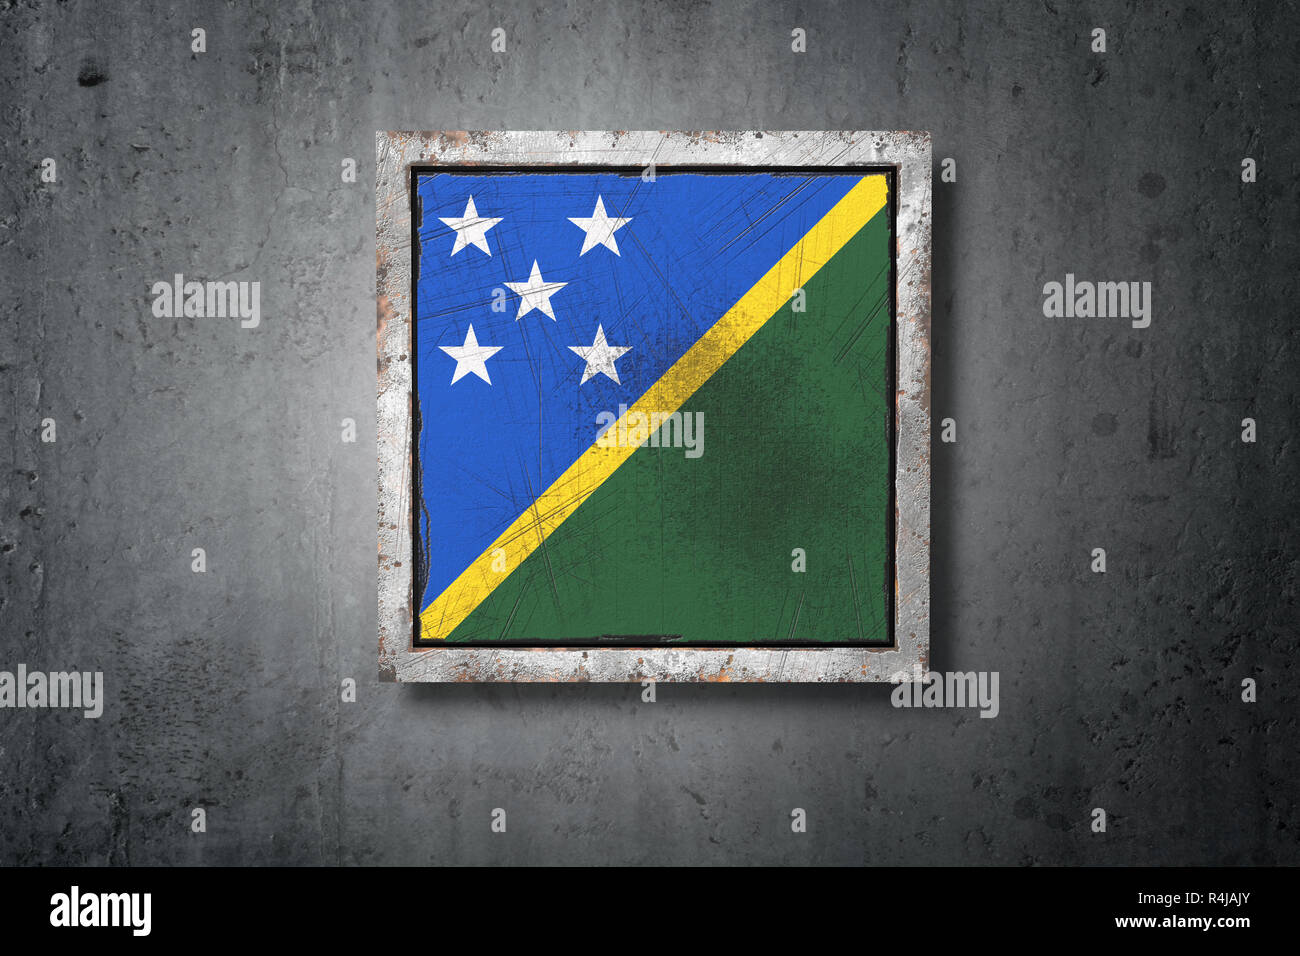 3d rendering of a Solomon Islands flag in a concrete wall - Stock Image